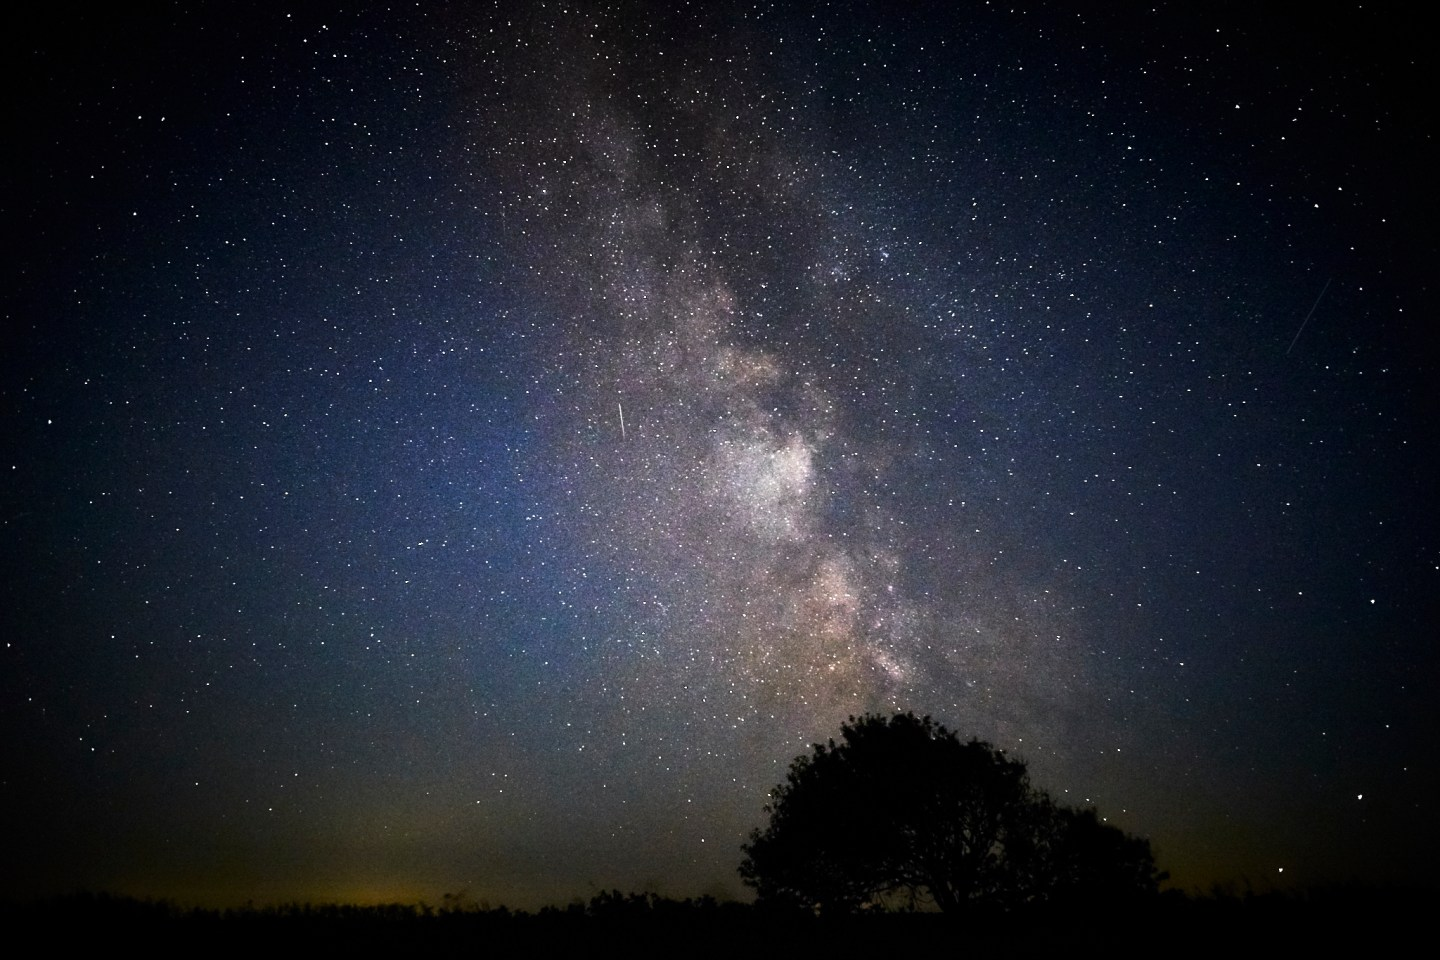 Fuji, Fujifilm, XF14mm, Astrophotography, Milkyway, Star, Rookie,